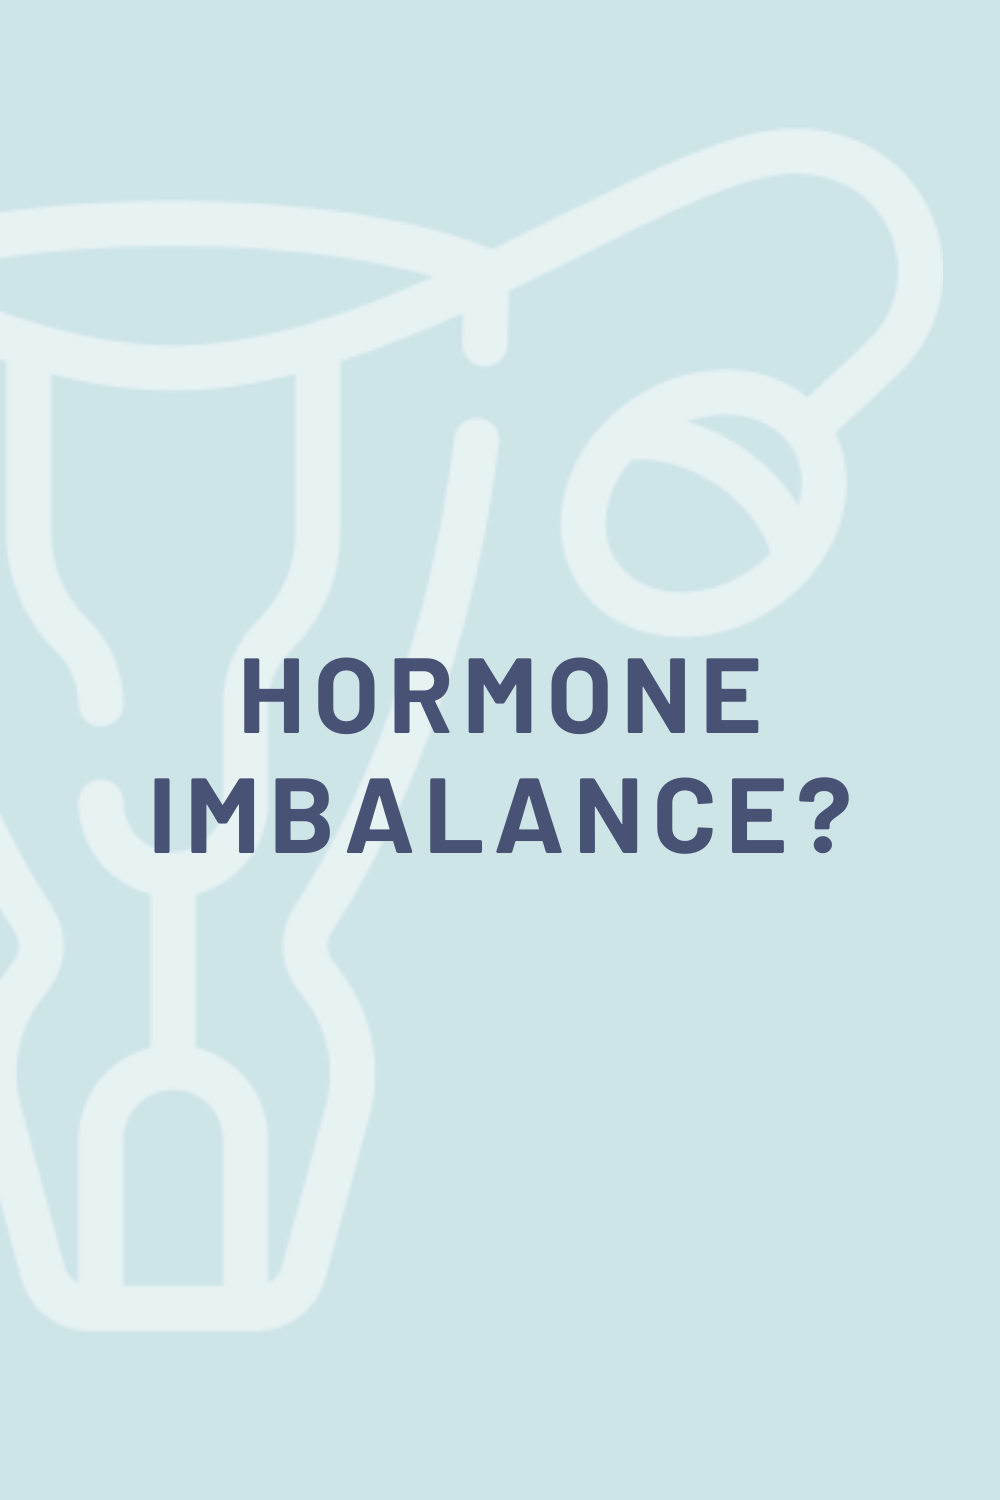 signs you suffer from hormone imbalance